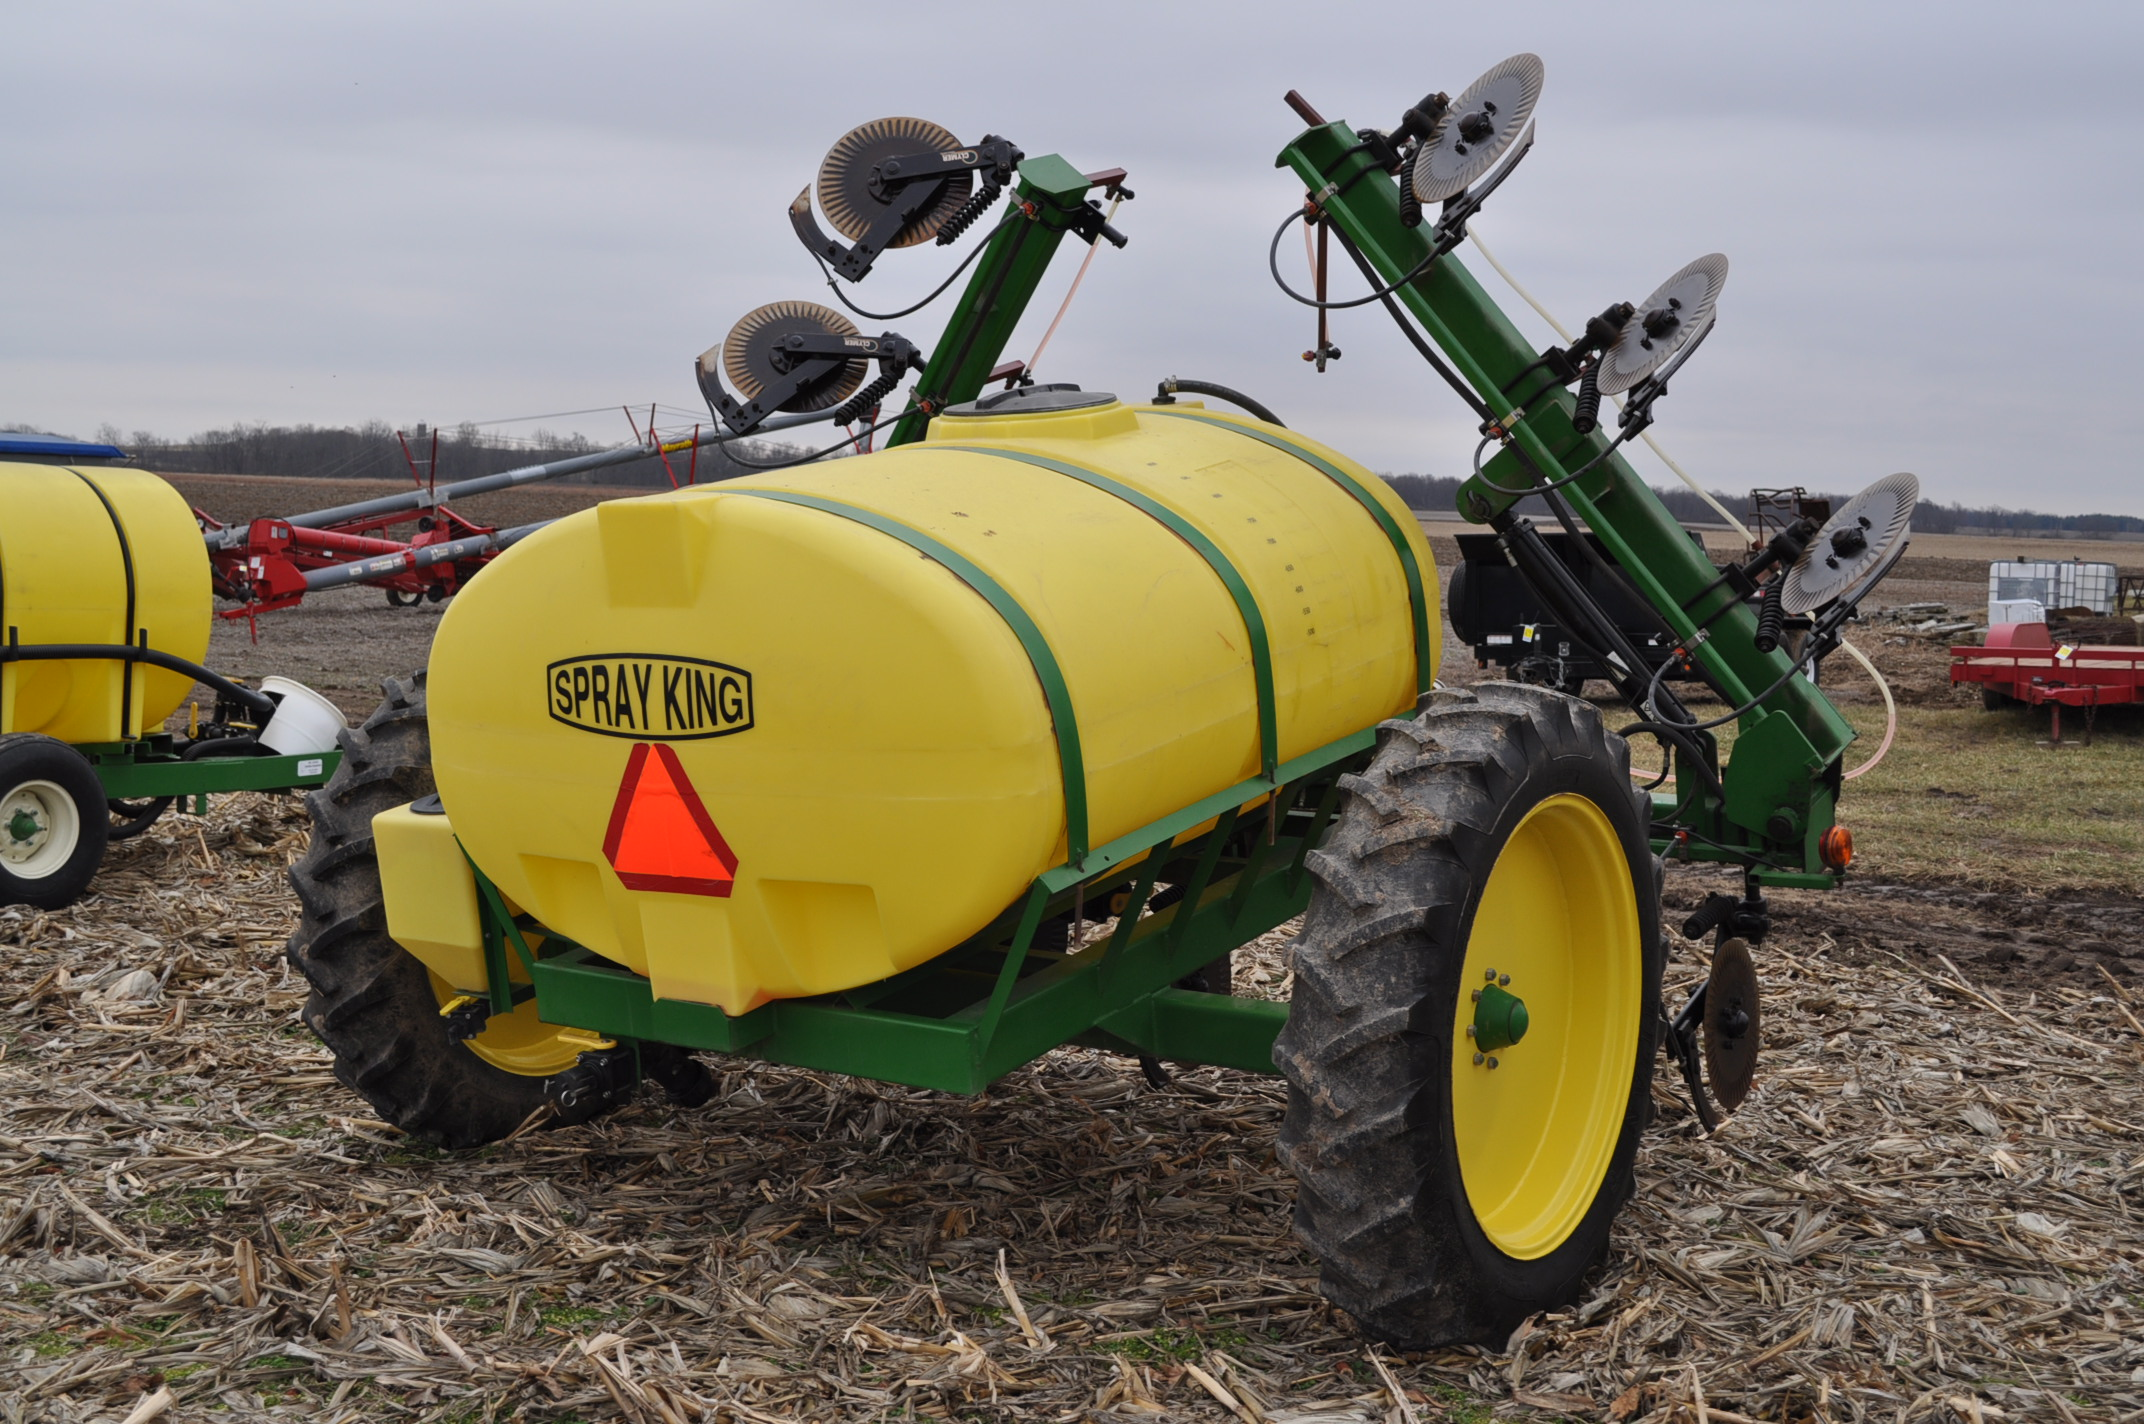 Spray King 28% applicator, 11 coulters w/ knives, 850 poly tank, SS hyd pump, spot spray nozzles - Image 3 of 15